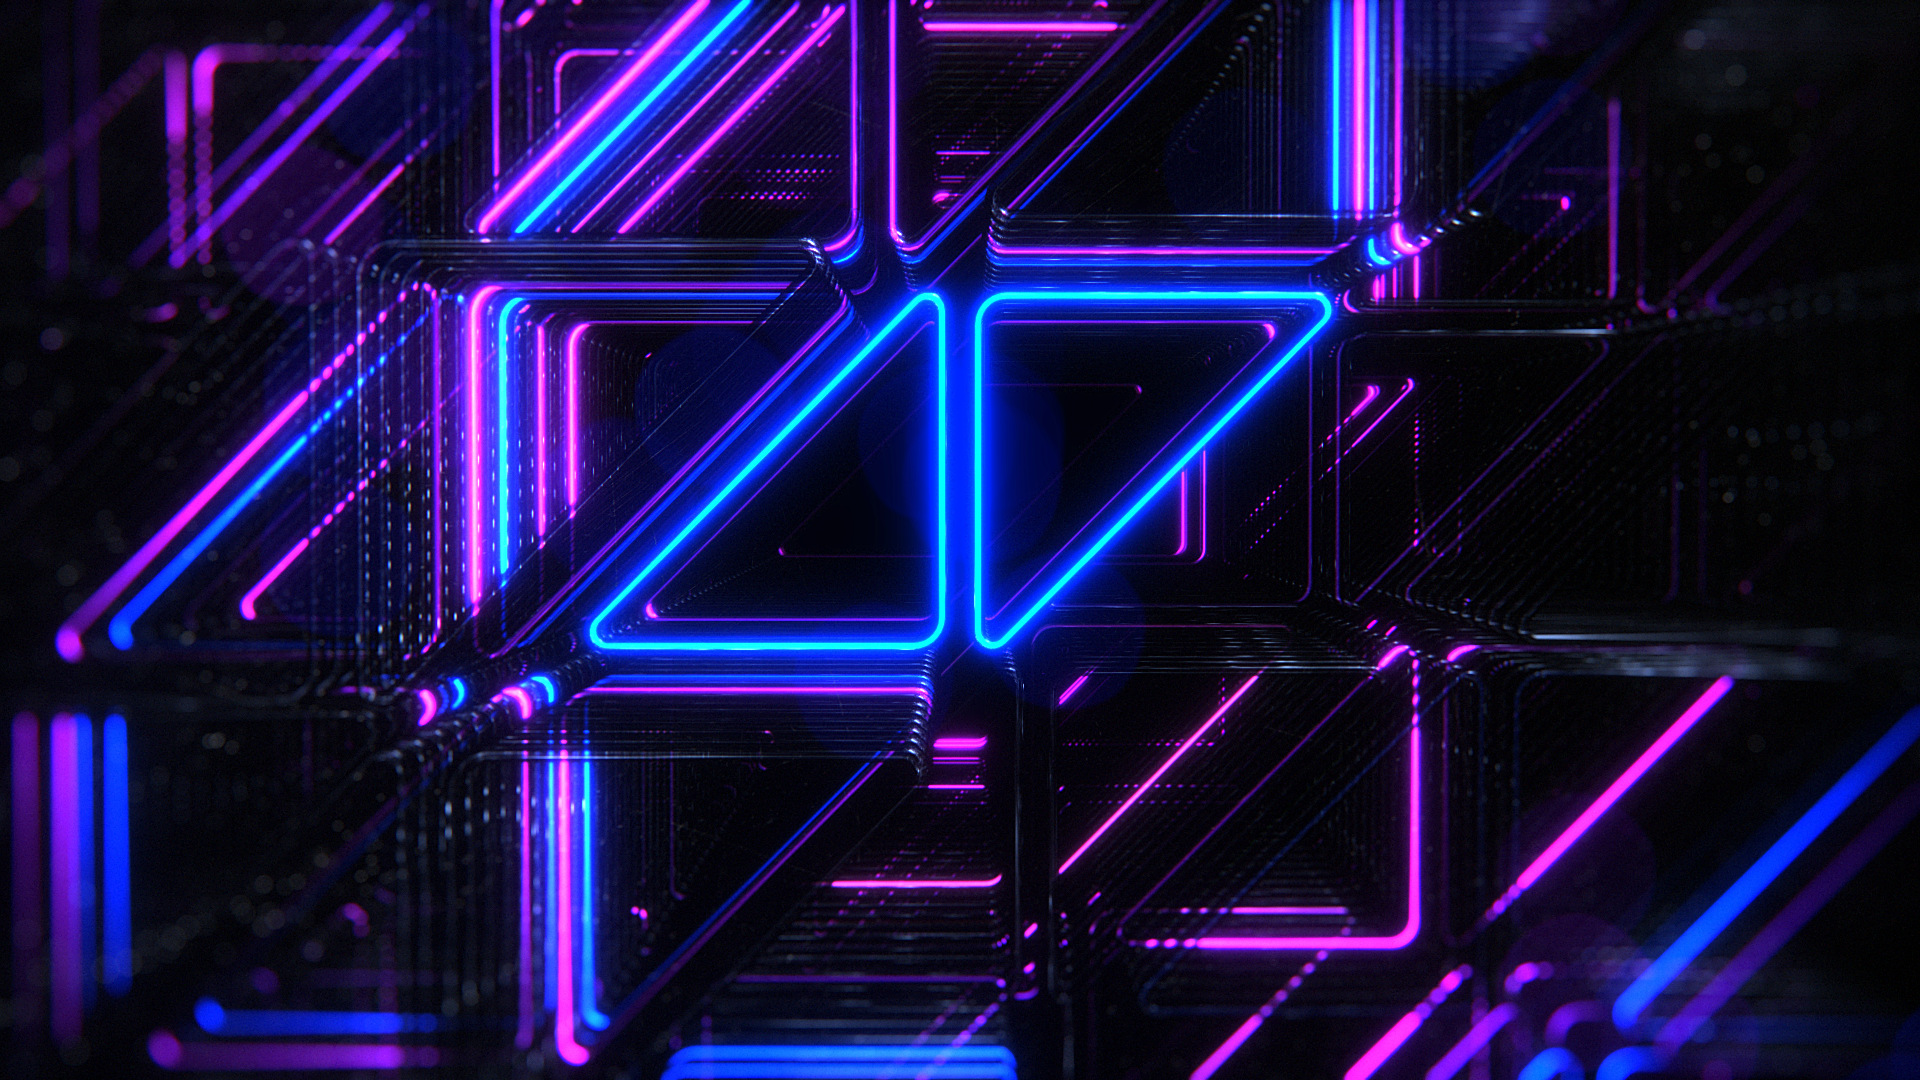 Neon Wallpaper Hd 3d Avicii World Tour 2014 Mindmedicine